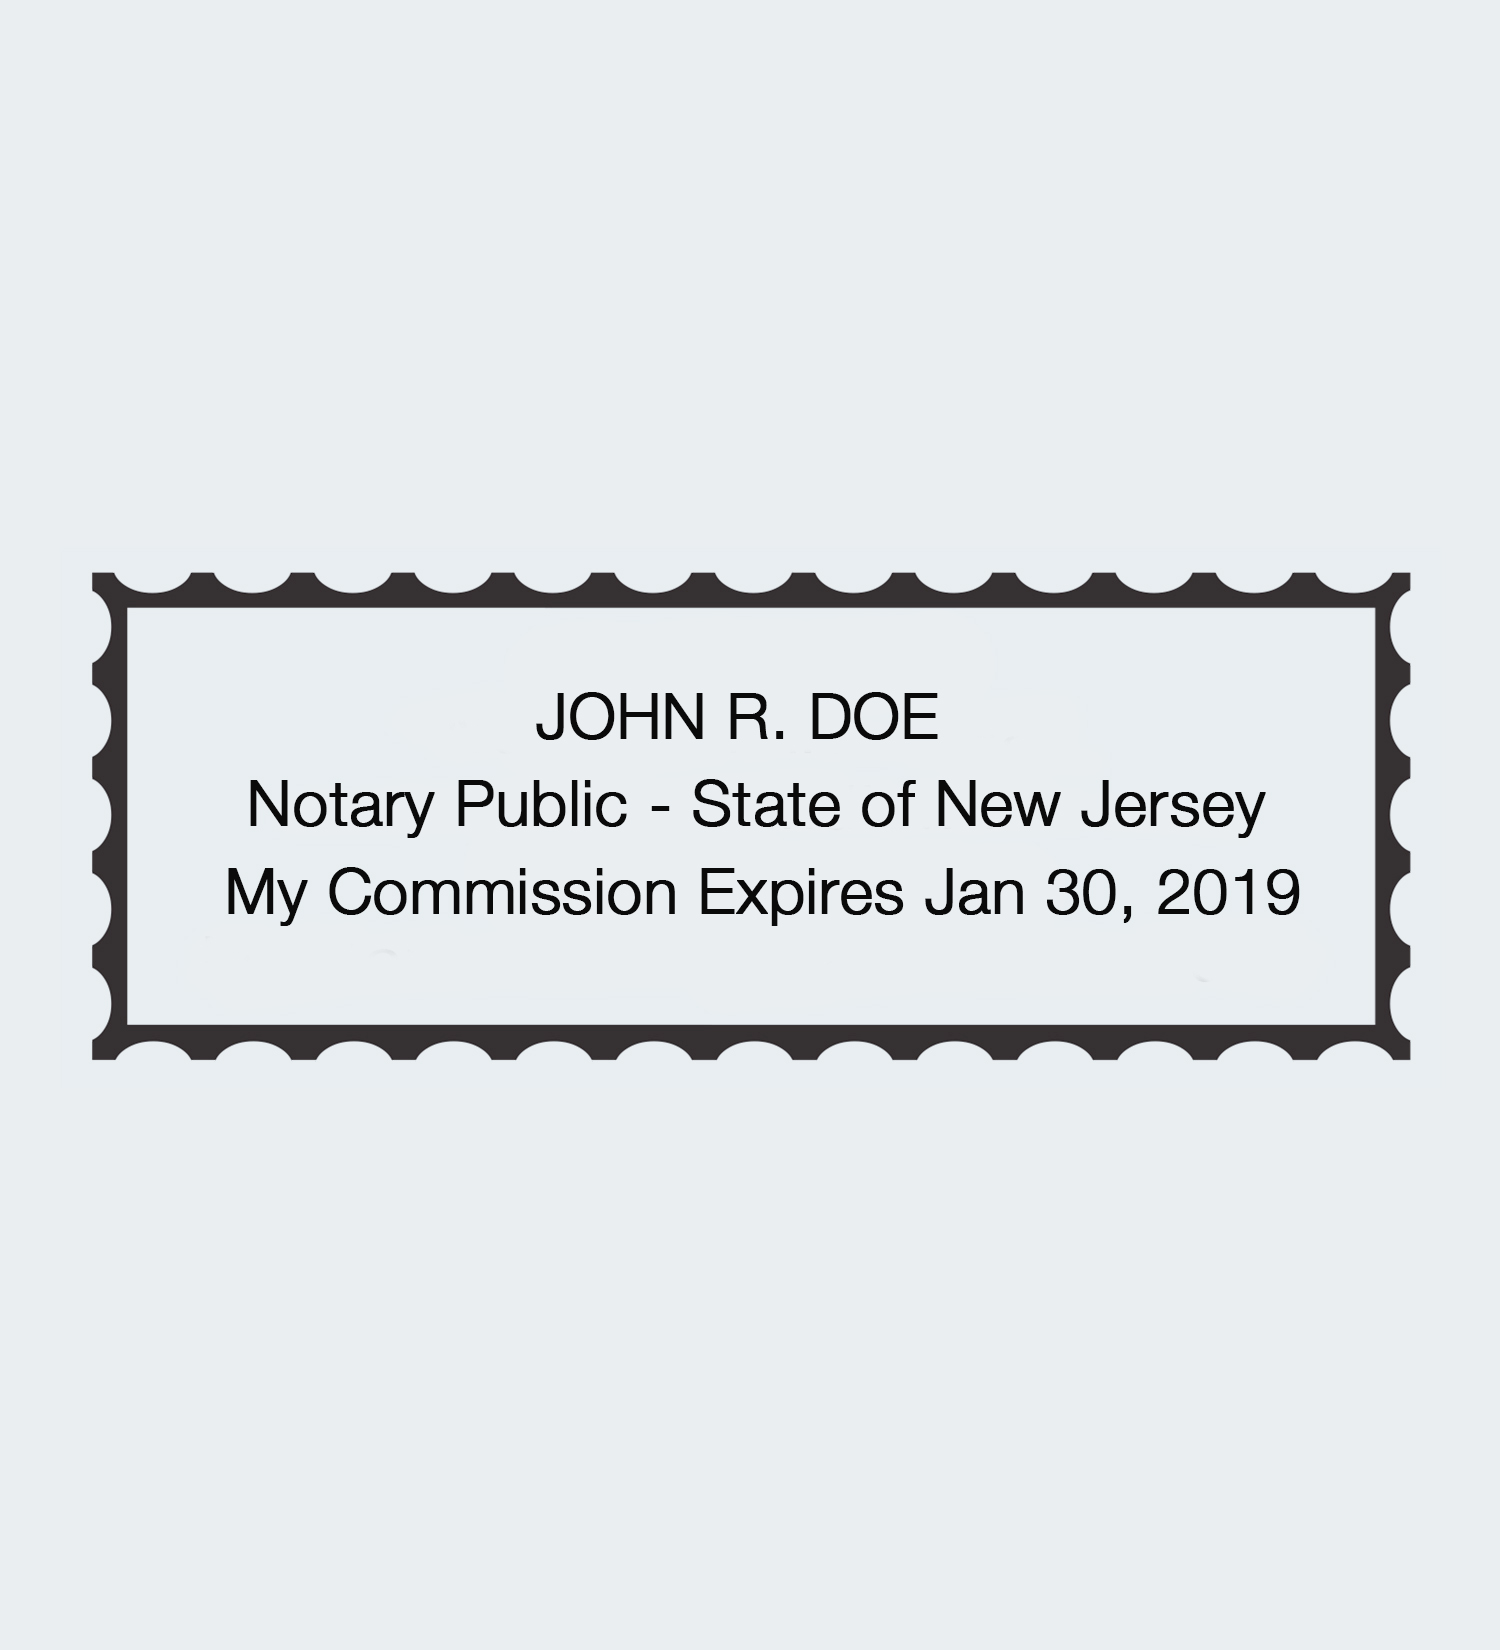 New Jersey Rectangular Seal Impression Stamp